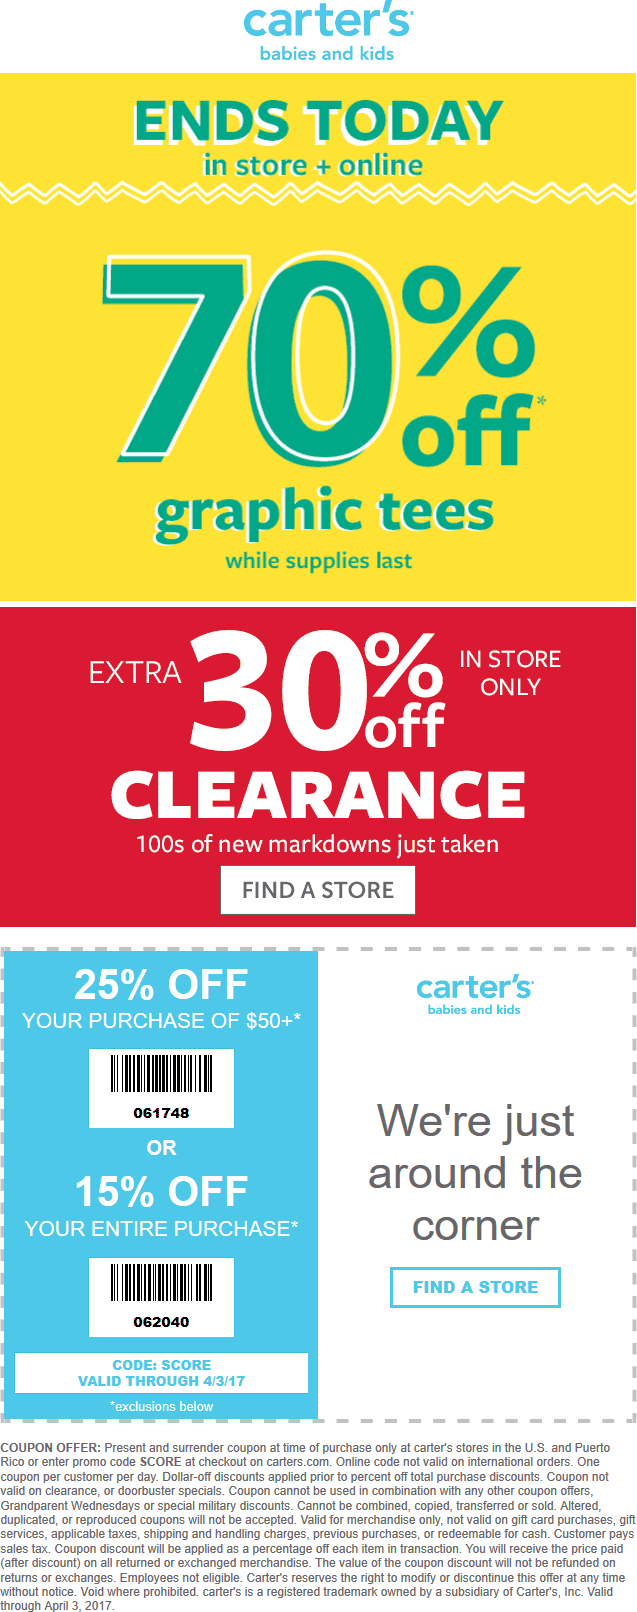 Carters Coupon December 2018 15-25% off at Carters, or online via promo code SCORE